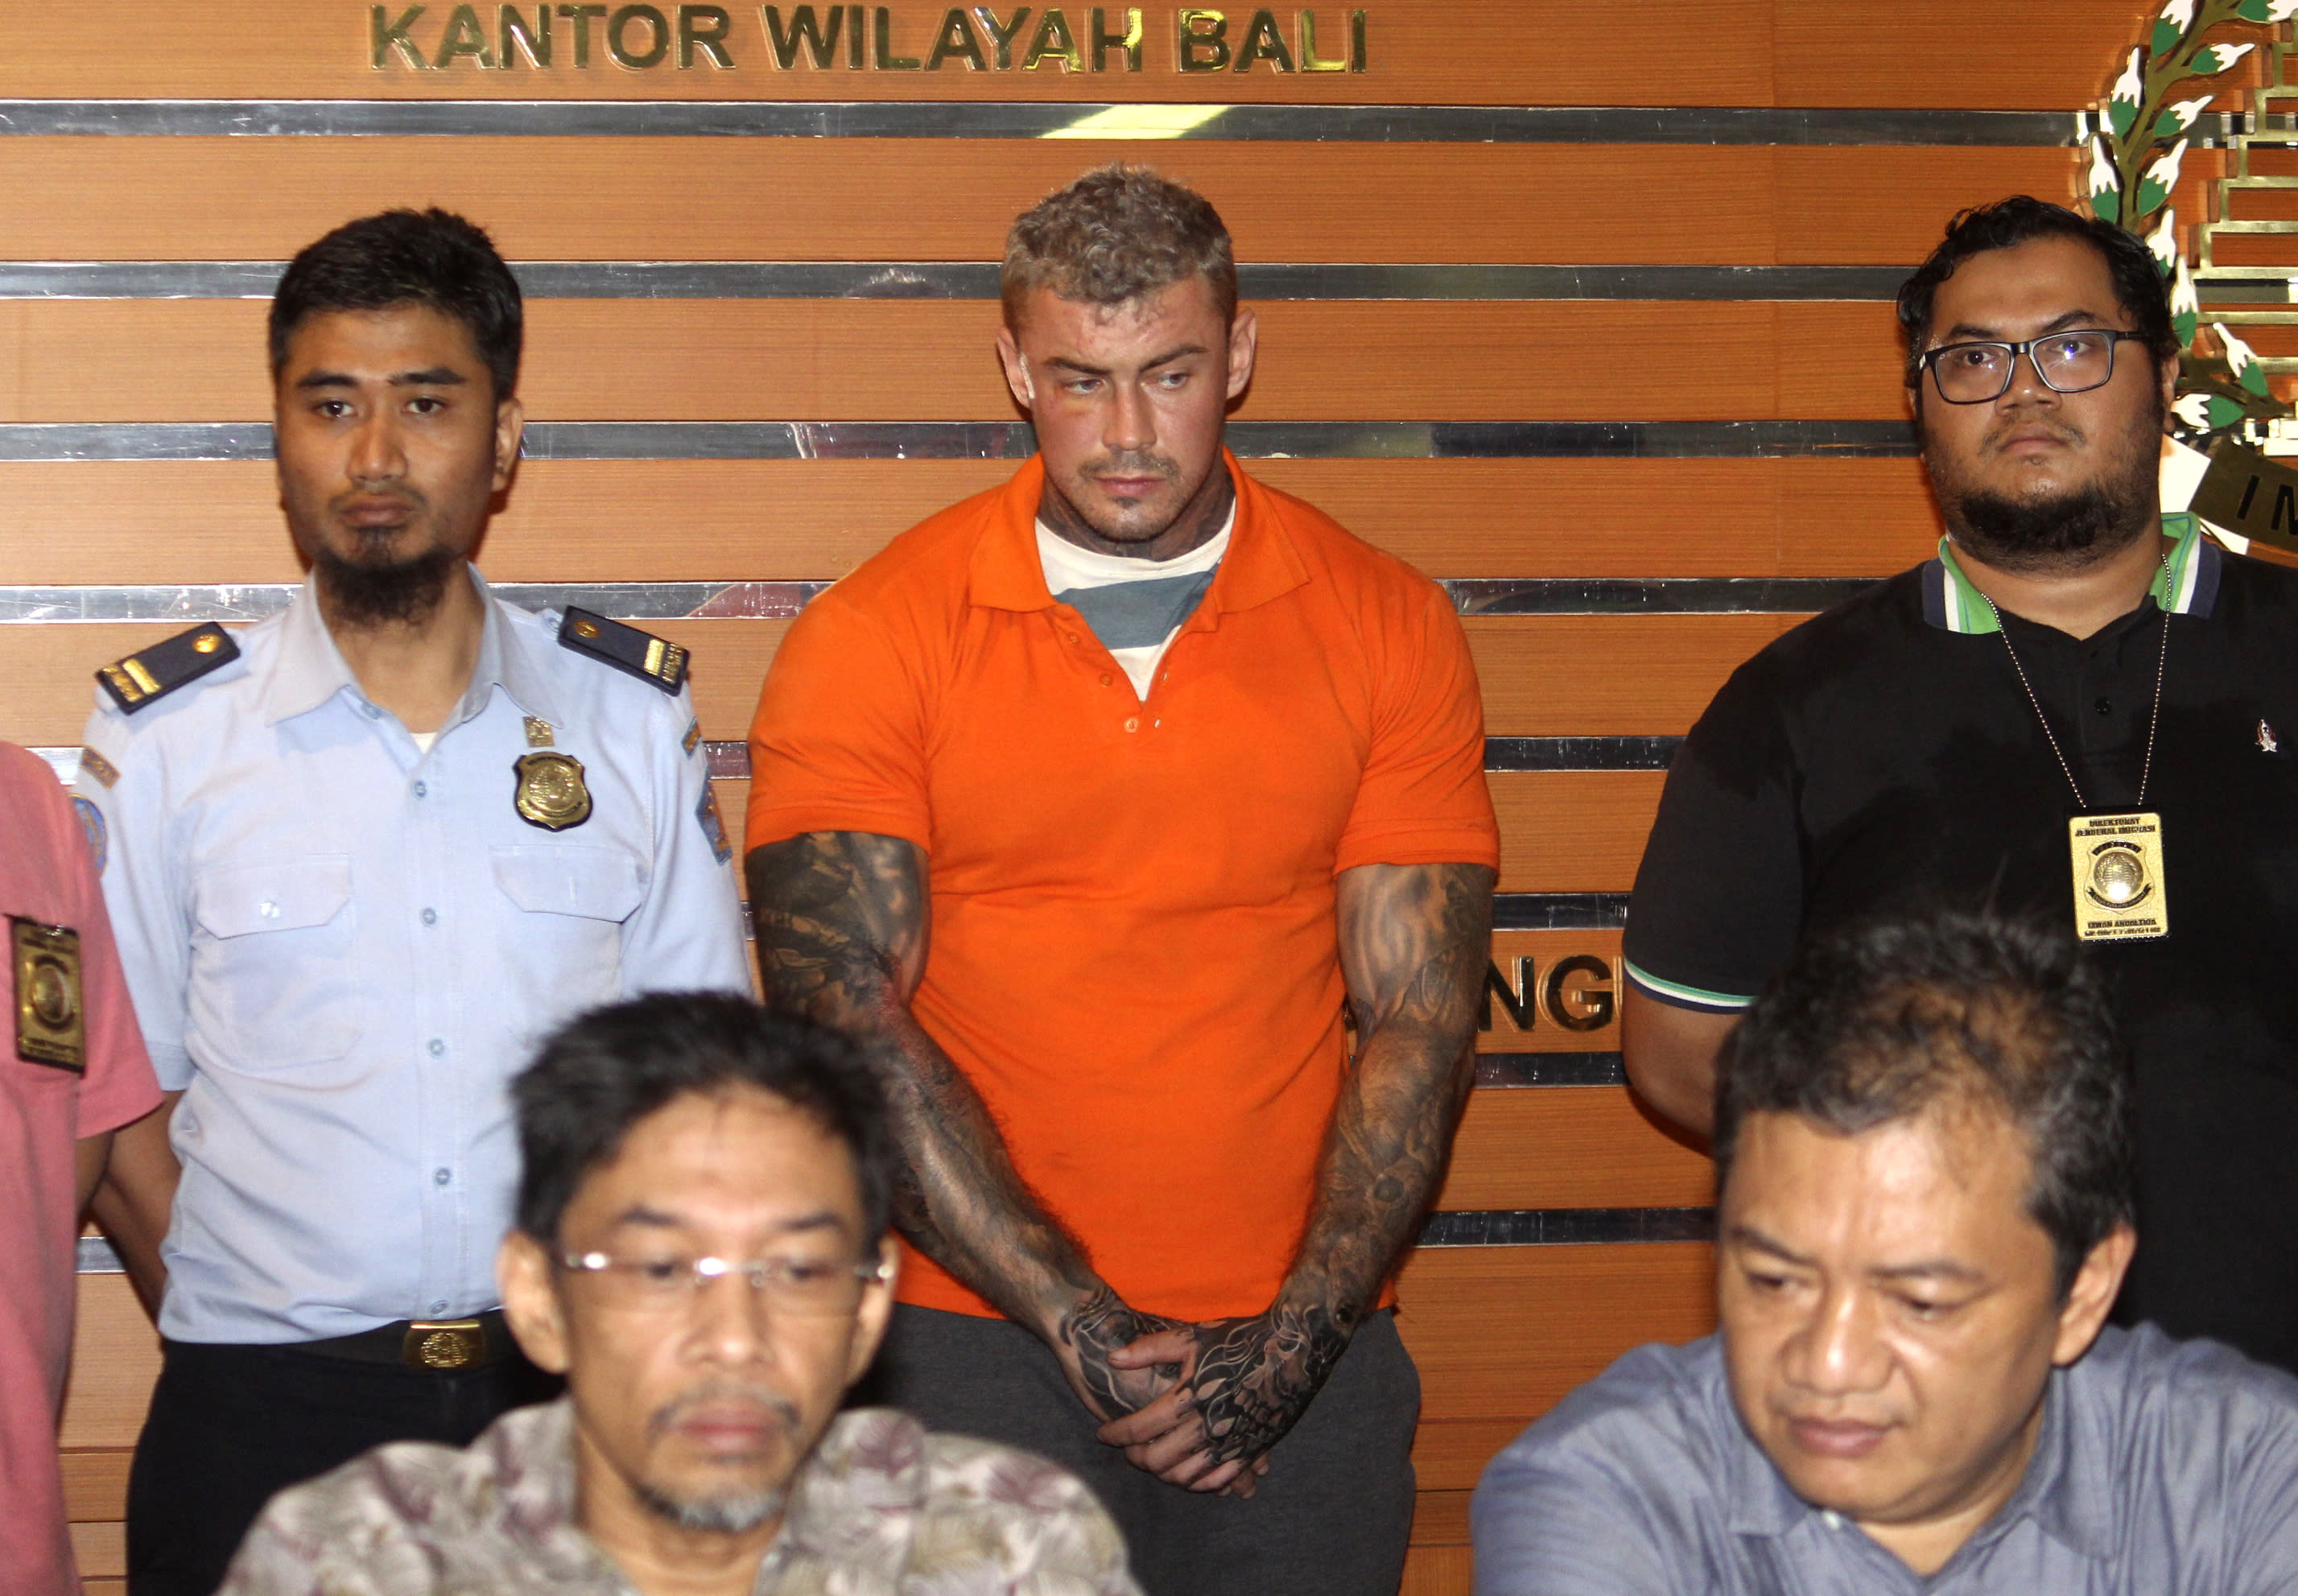 Camden Town Porno indonesia says british man caught in bali with drugs, porn